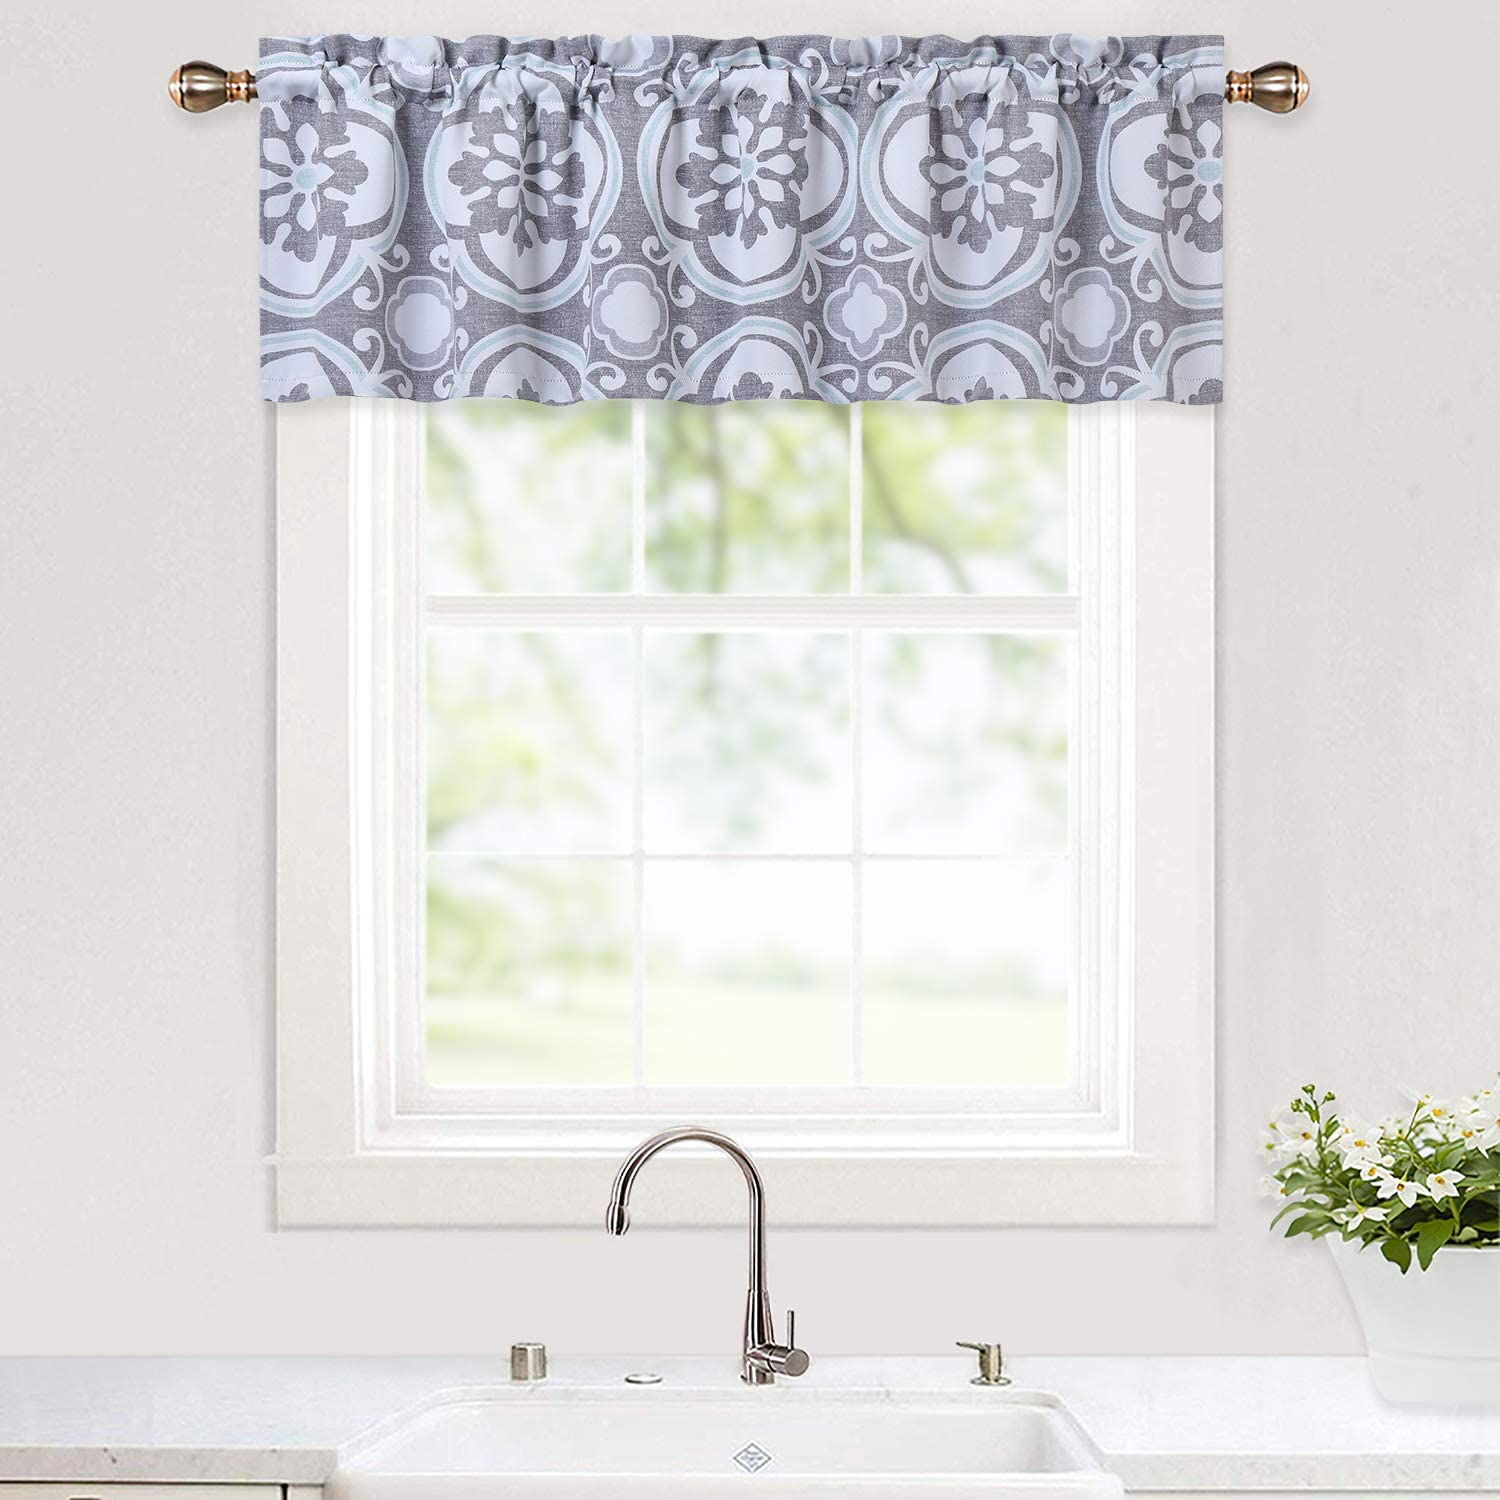 "Haperlare Medallion Pattern Valance Curtains for Kitchen Cafe Curtains, Room Darkening Floral Printed Window Kitchen Valanc, Blackout Valance Bathroom Window Curtains, Grey, 52"" x 15"""